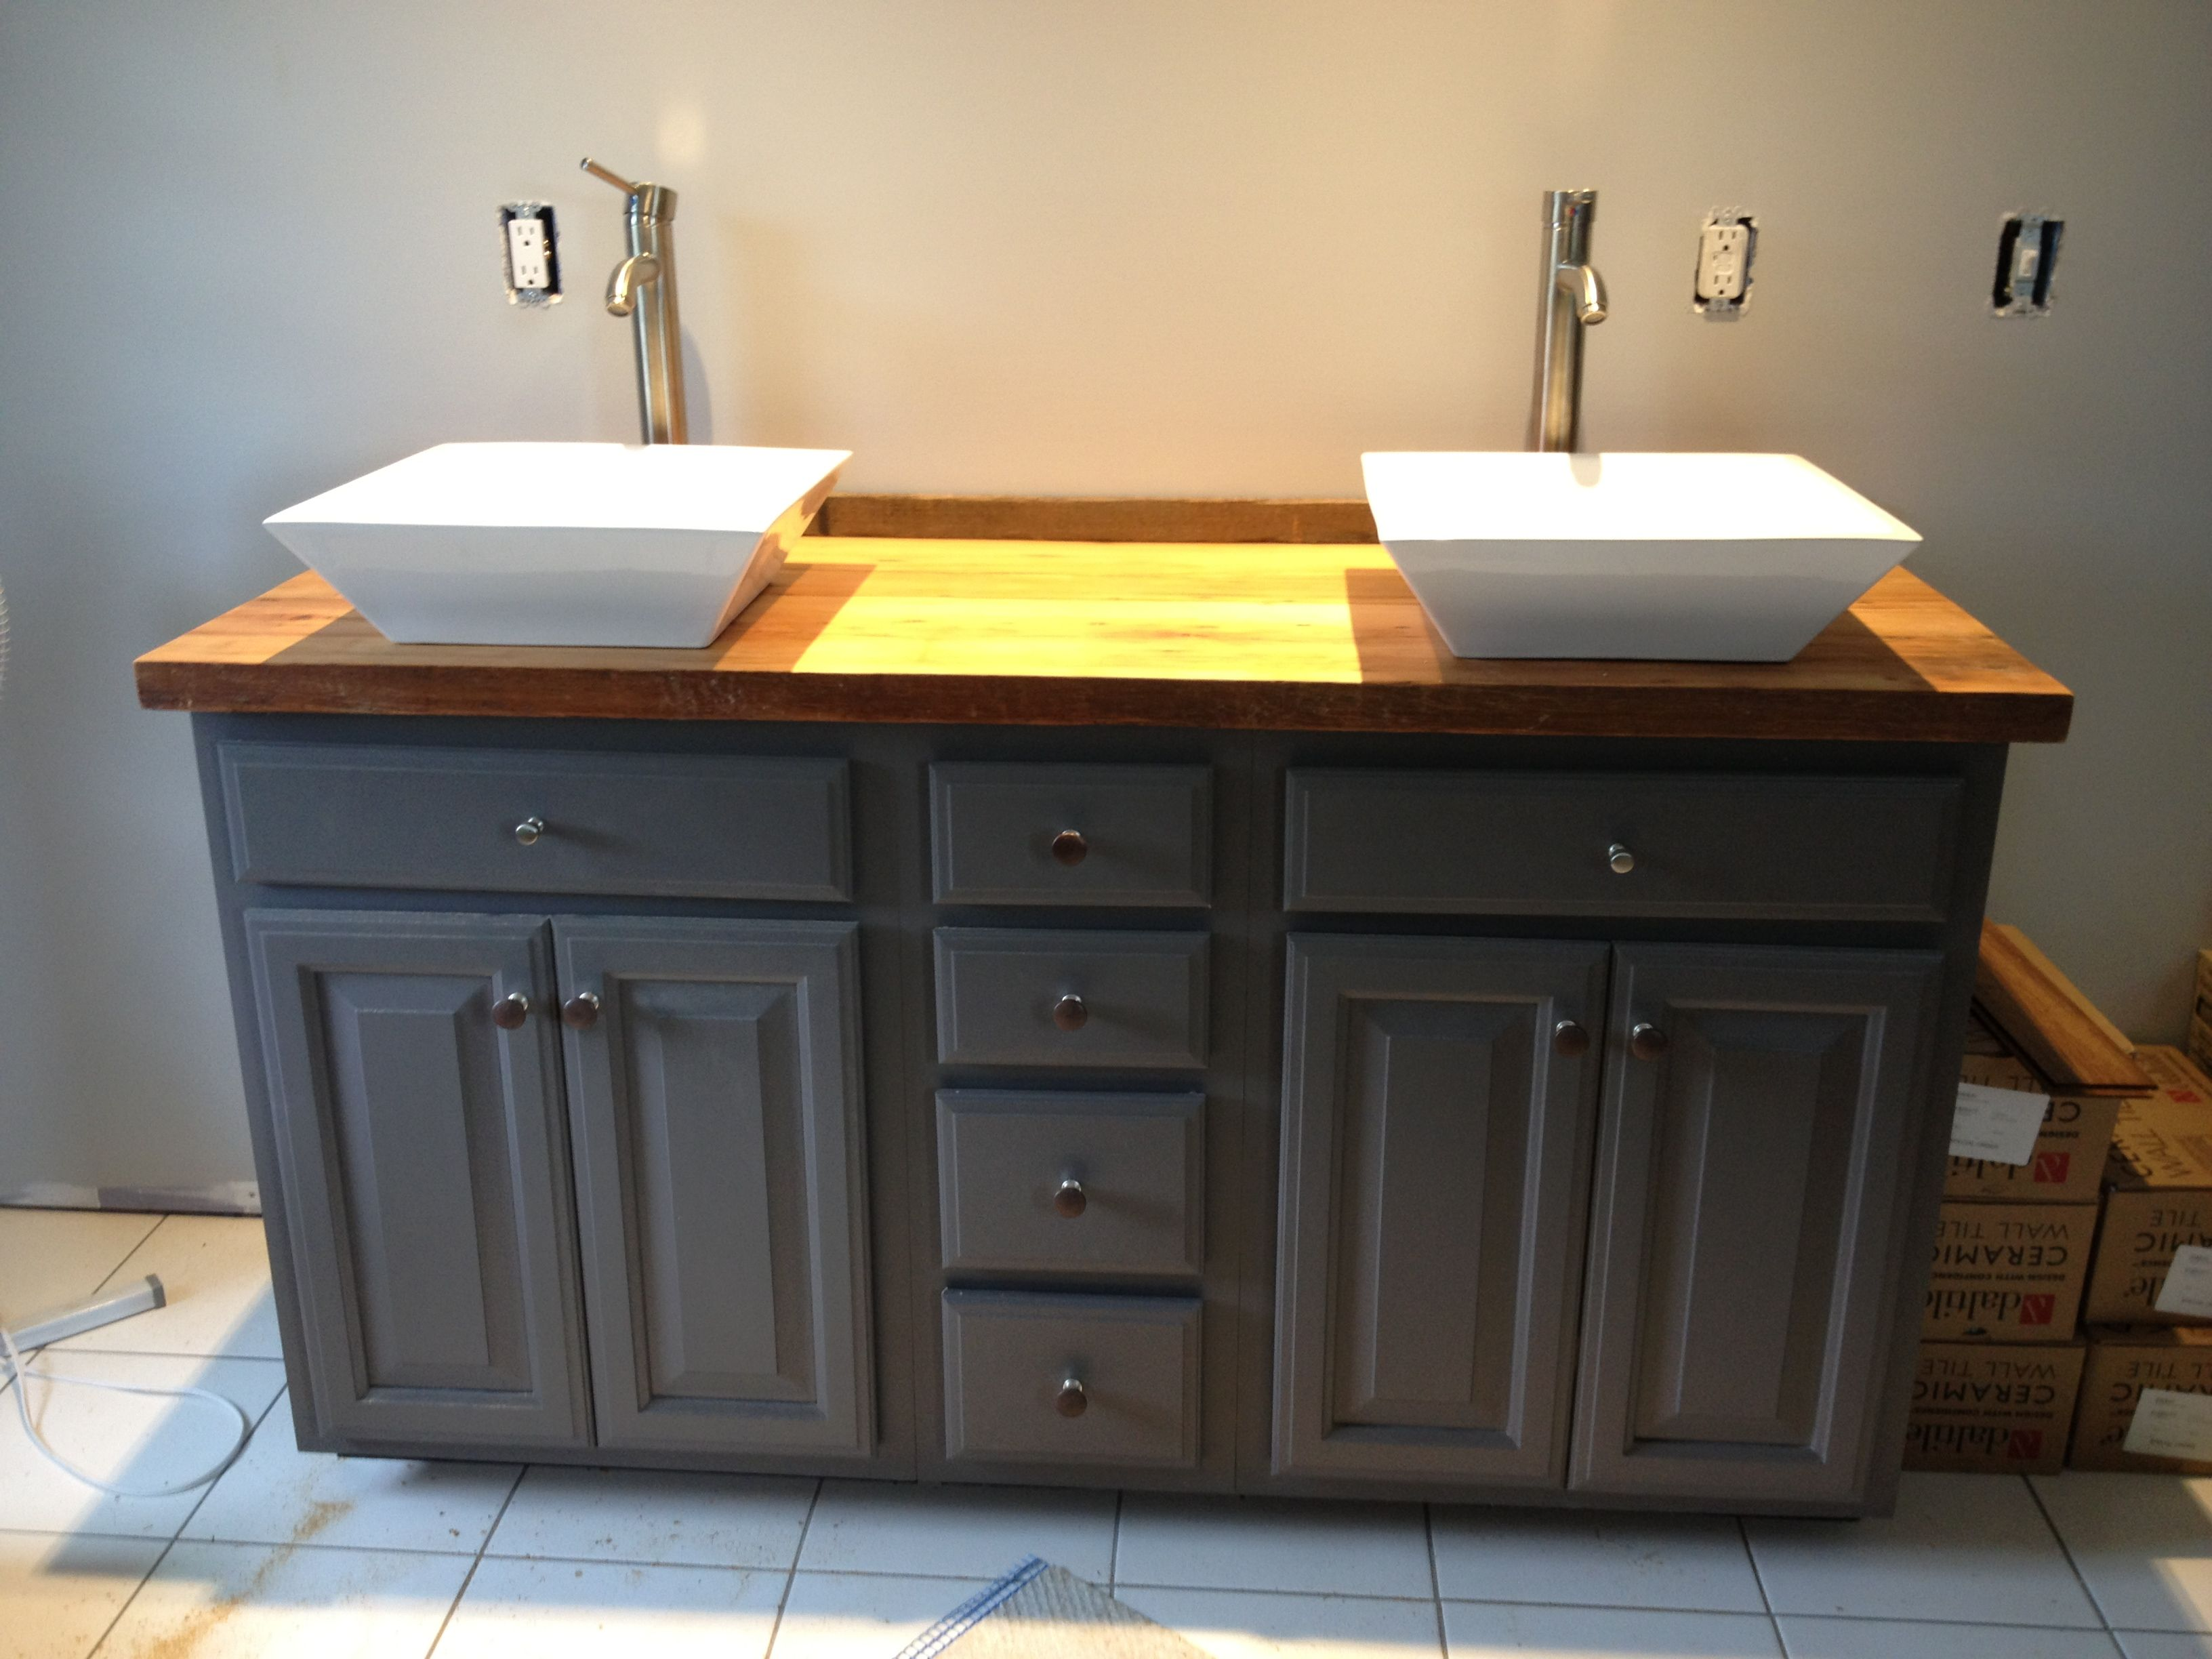 DIY Bathroom vanity used the barn wood hemlock pieces finished